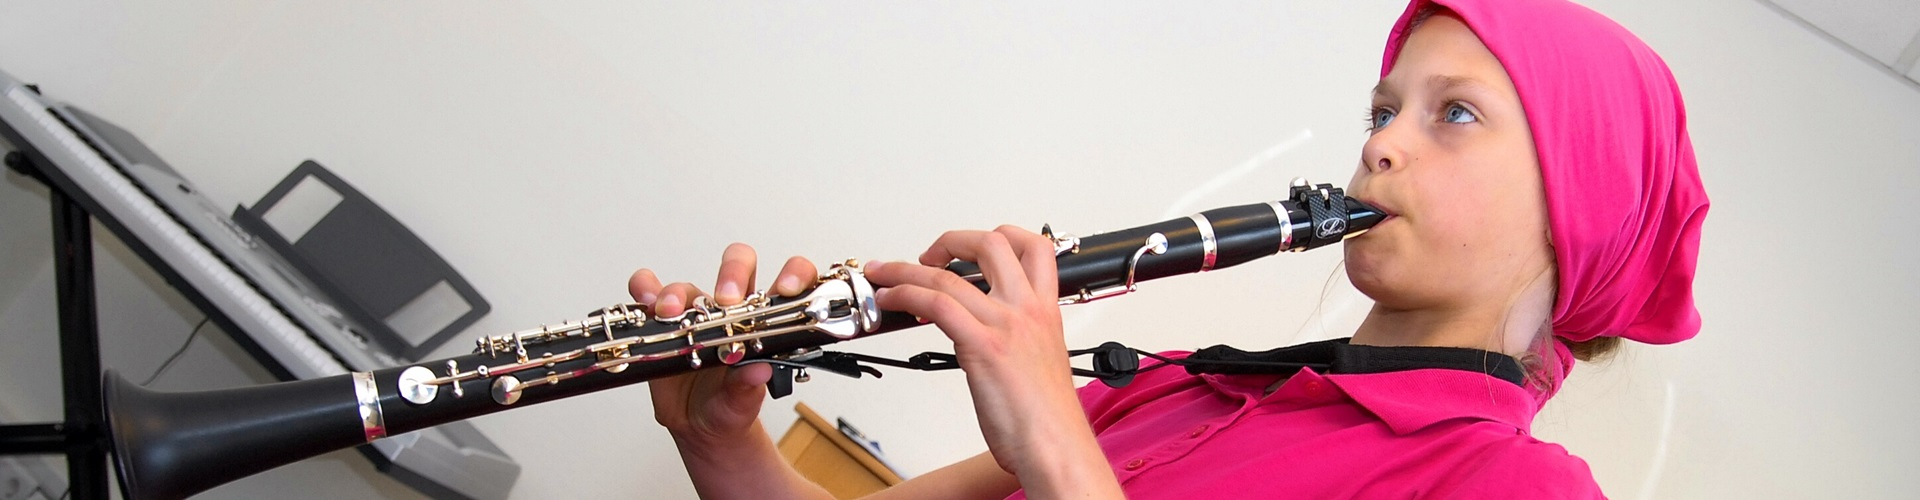 Learn Clarinet, Clarinet lessons